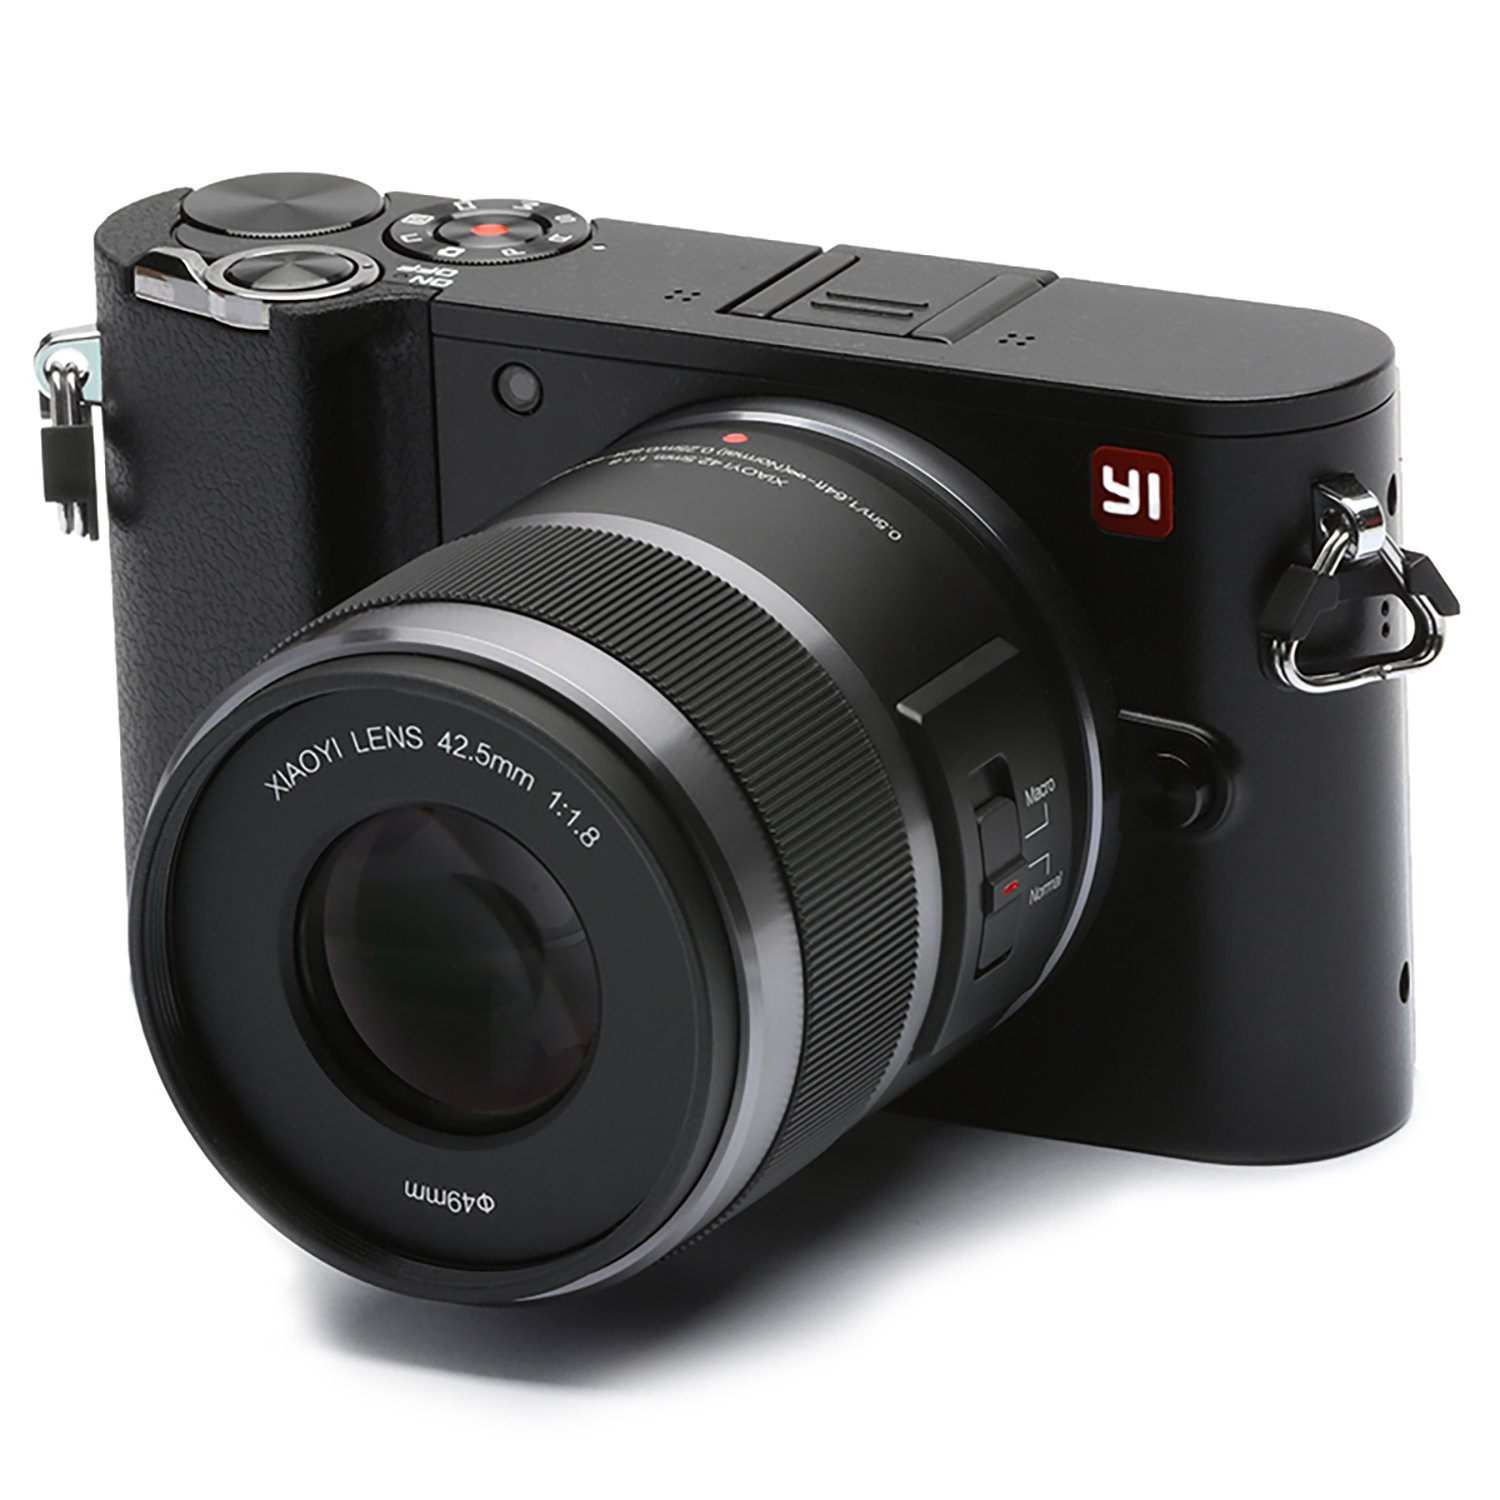 YI M1 Mirrorless Digital Camera with 42.5mm F1.8 Lens Storm Black(US Edition)